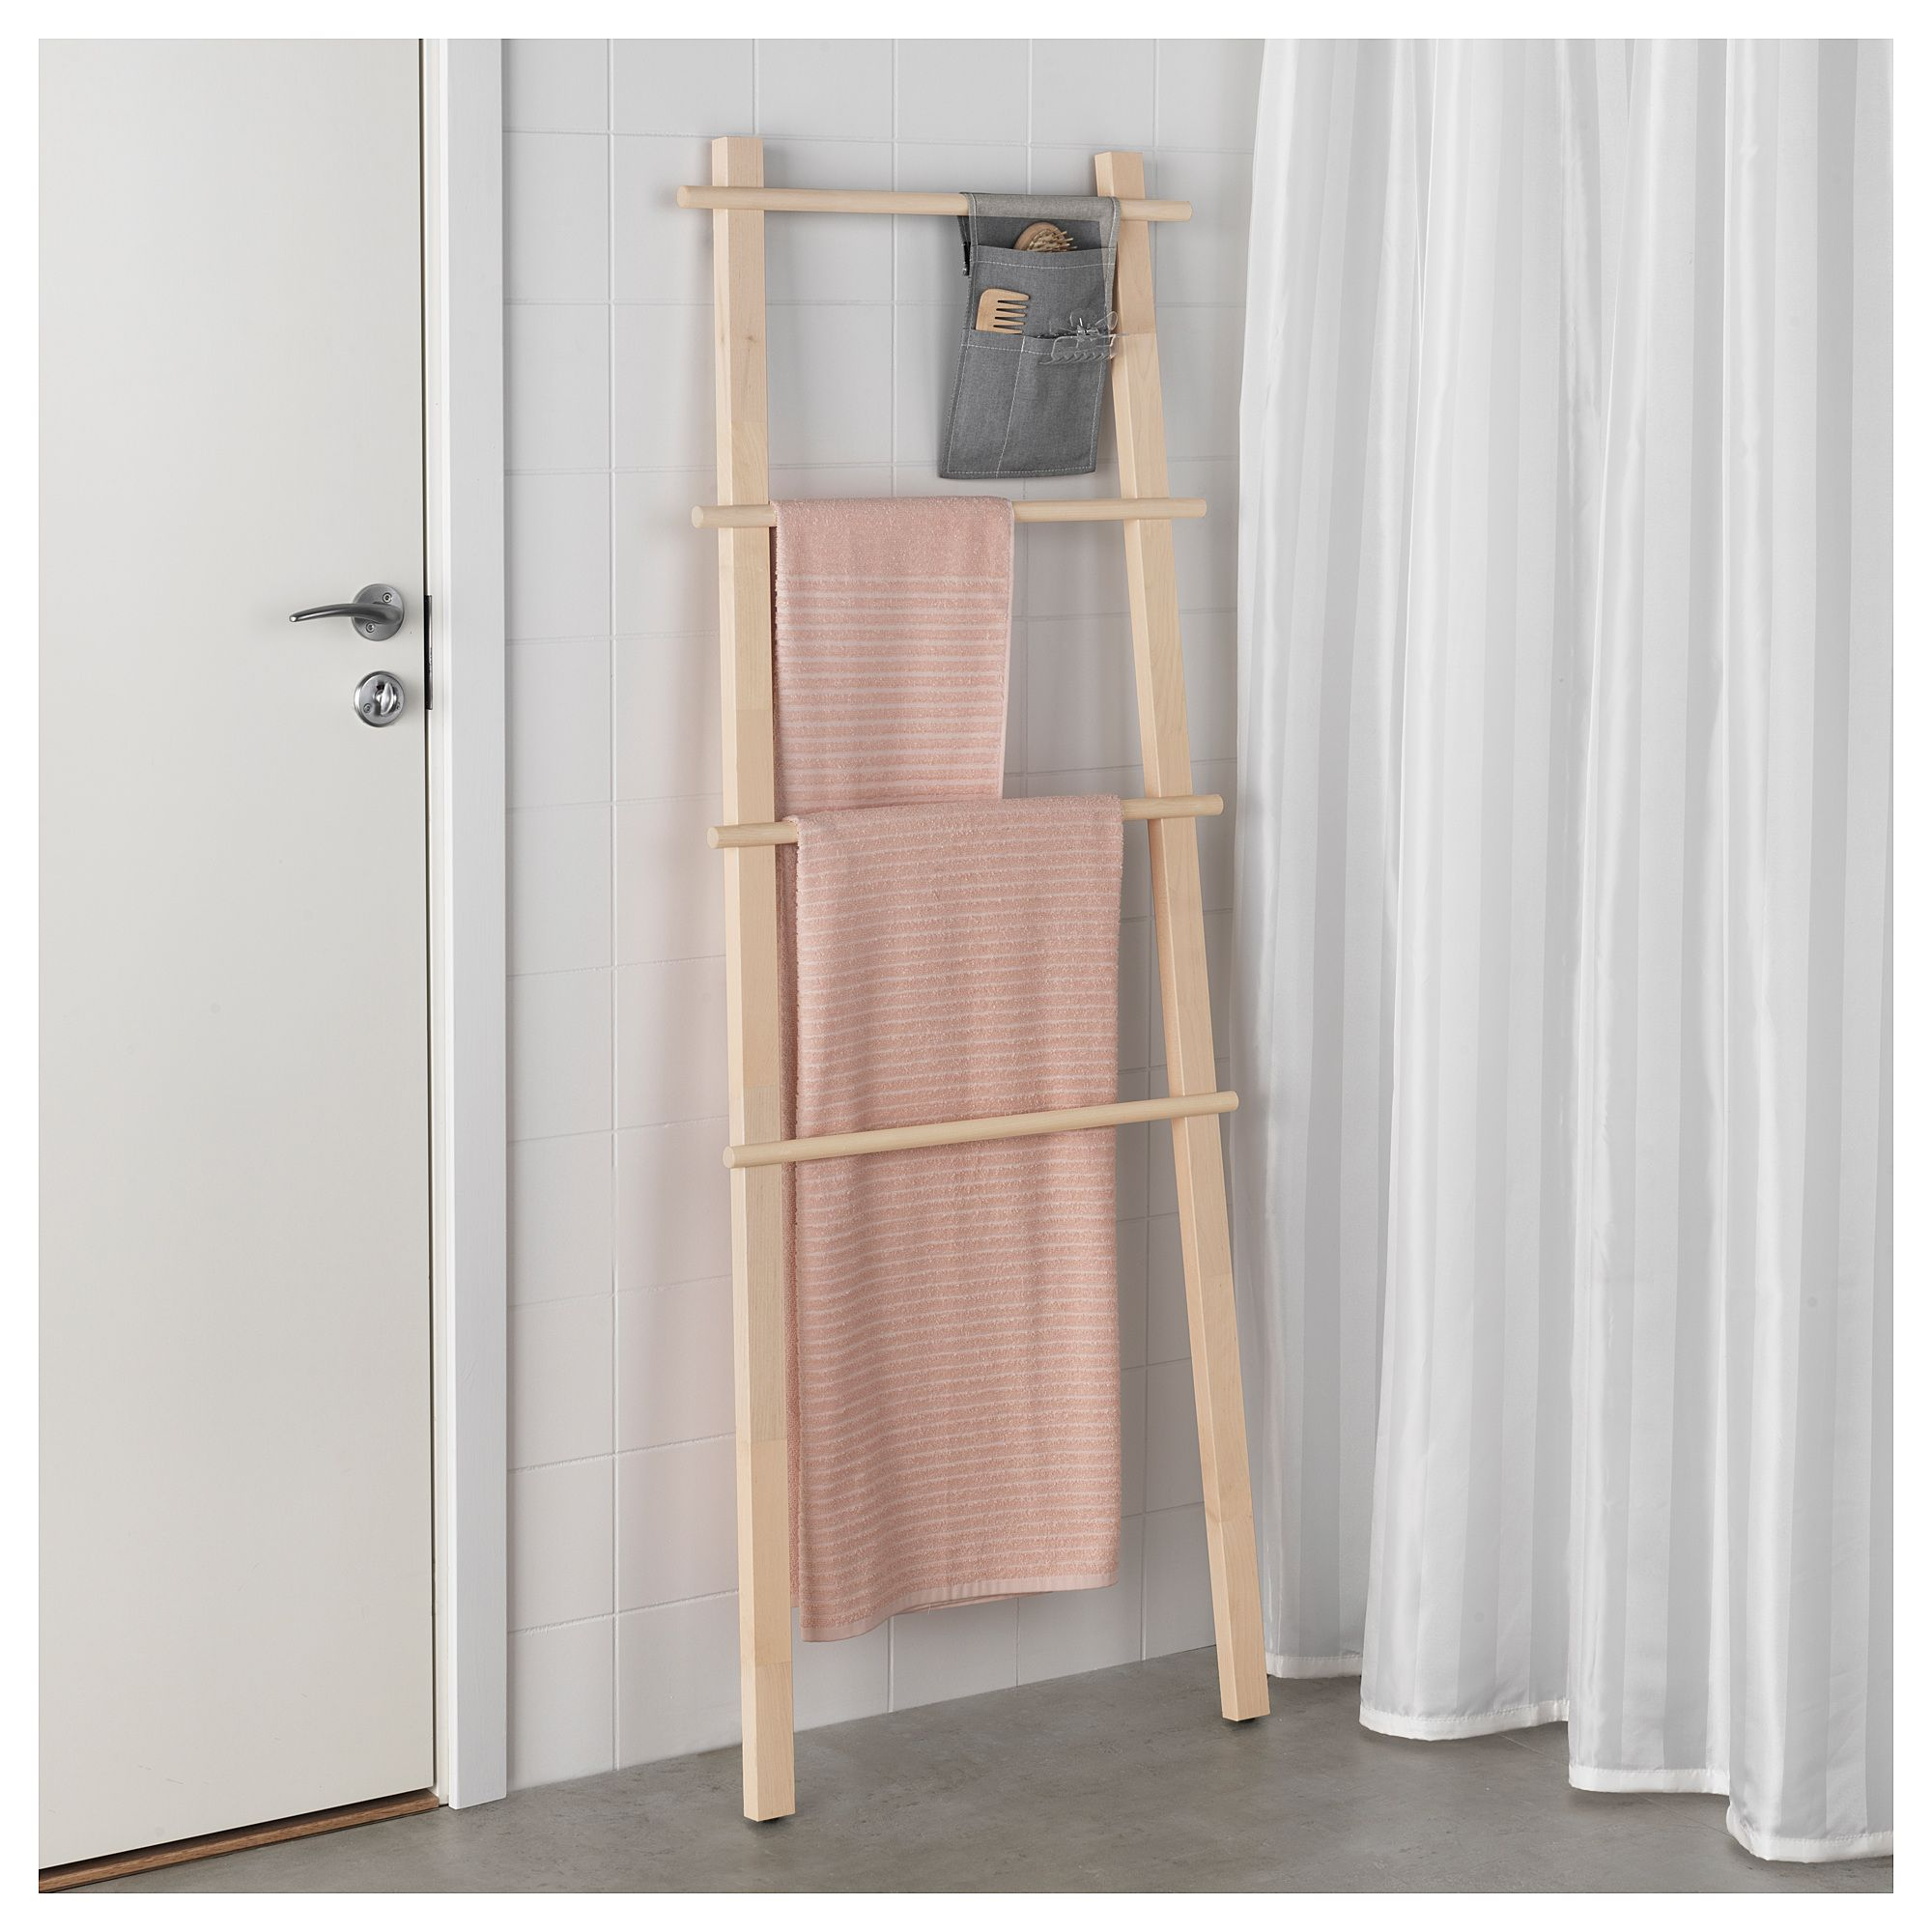 Ikea Vilto Towel Stand Birch In 2019 Products Ikea